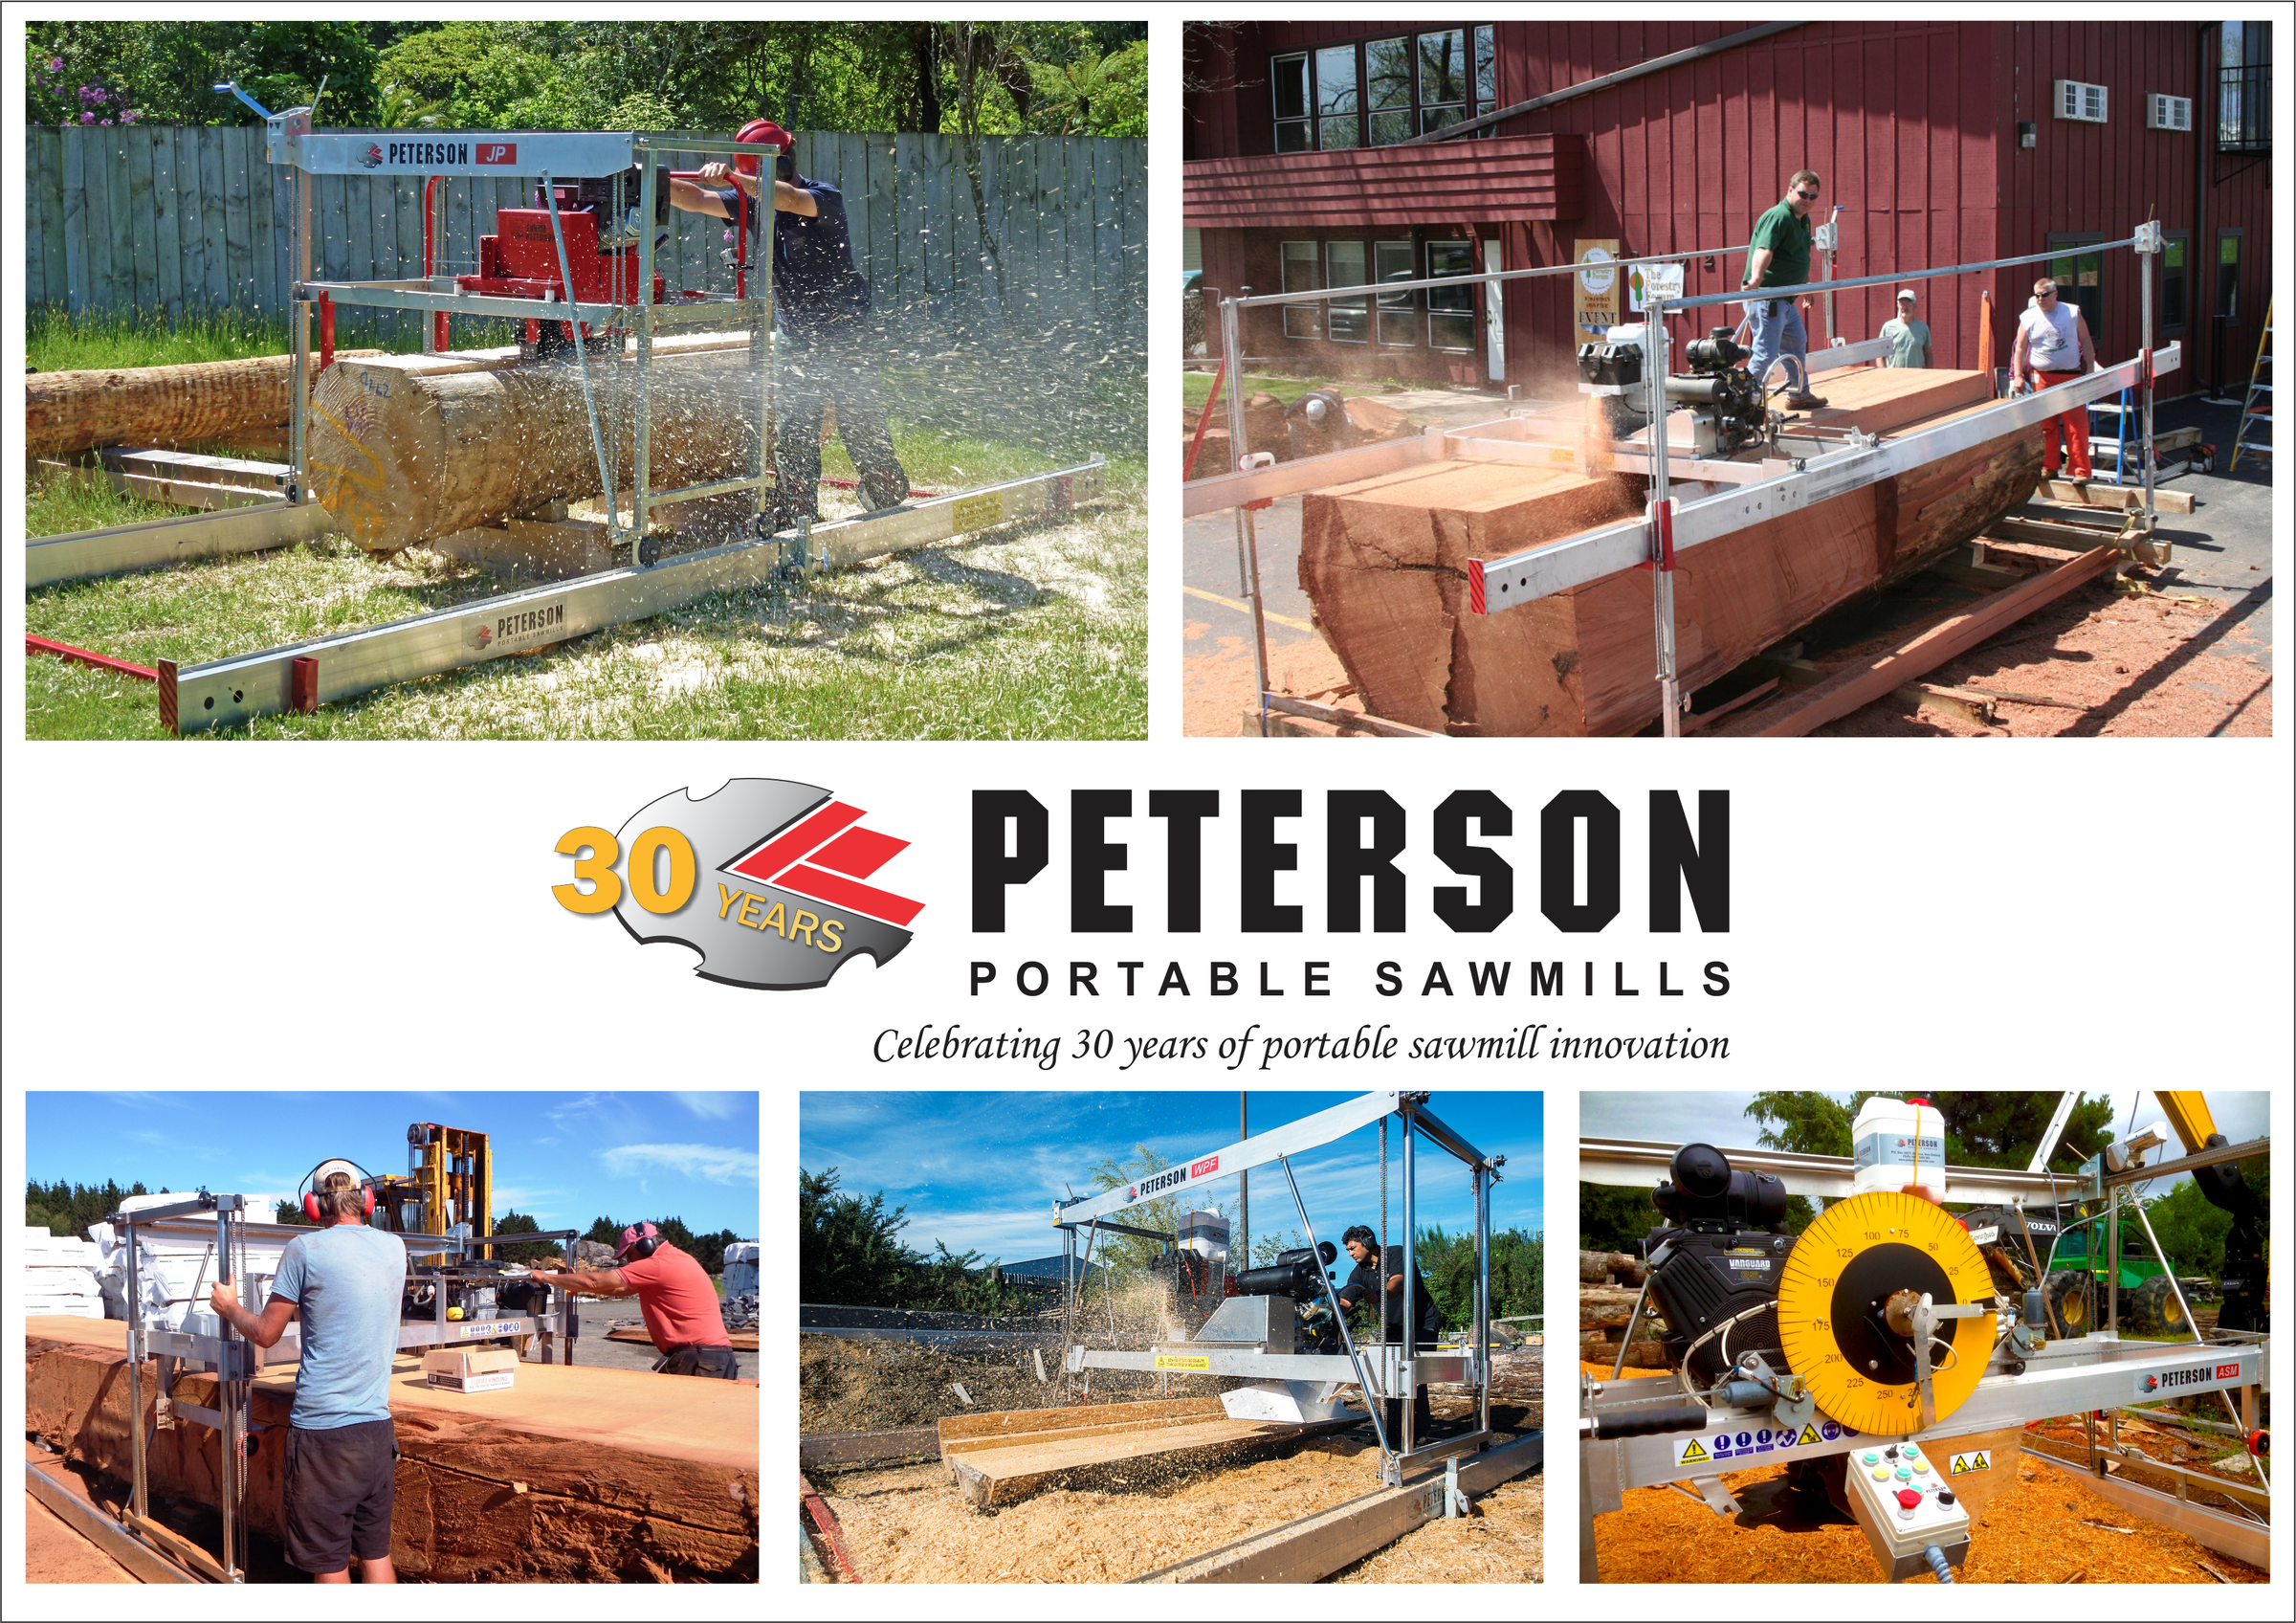 Peterson Portable Sawmills - Celebrating 30 years of